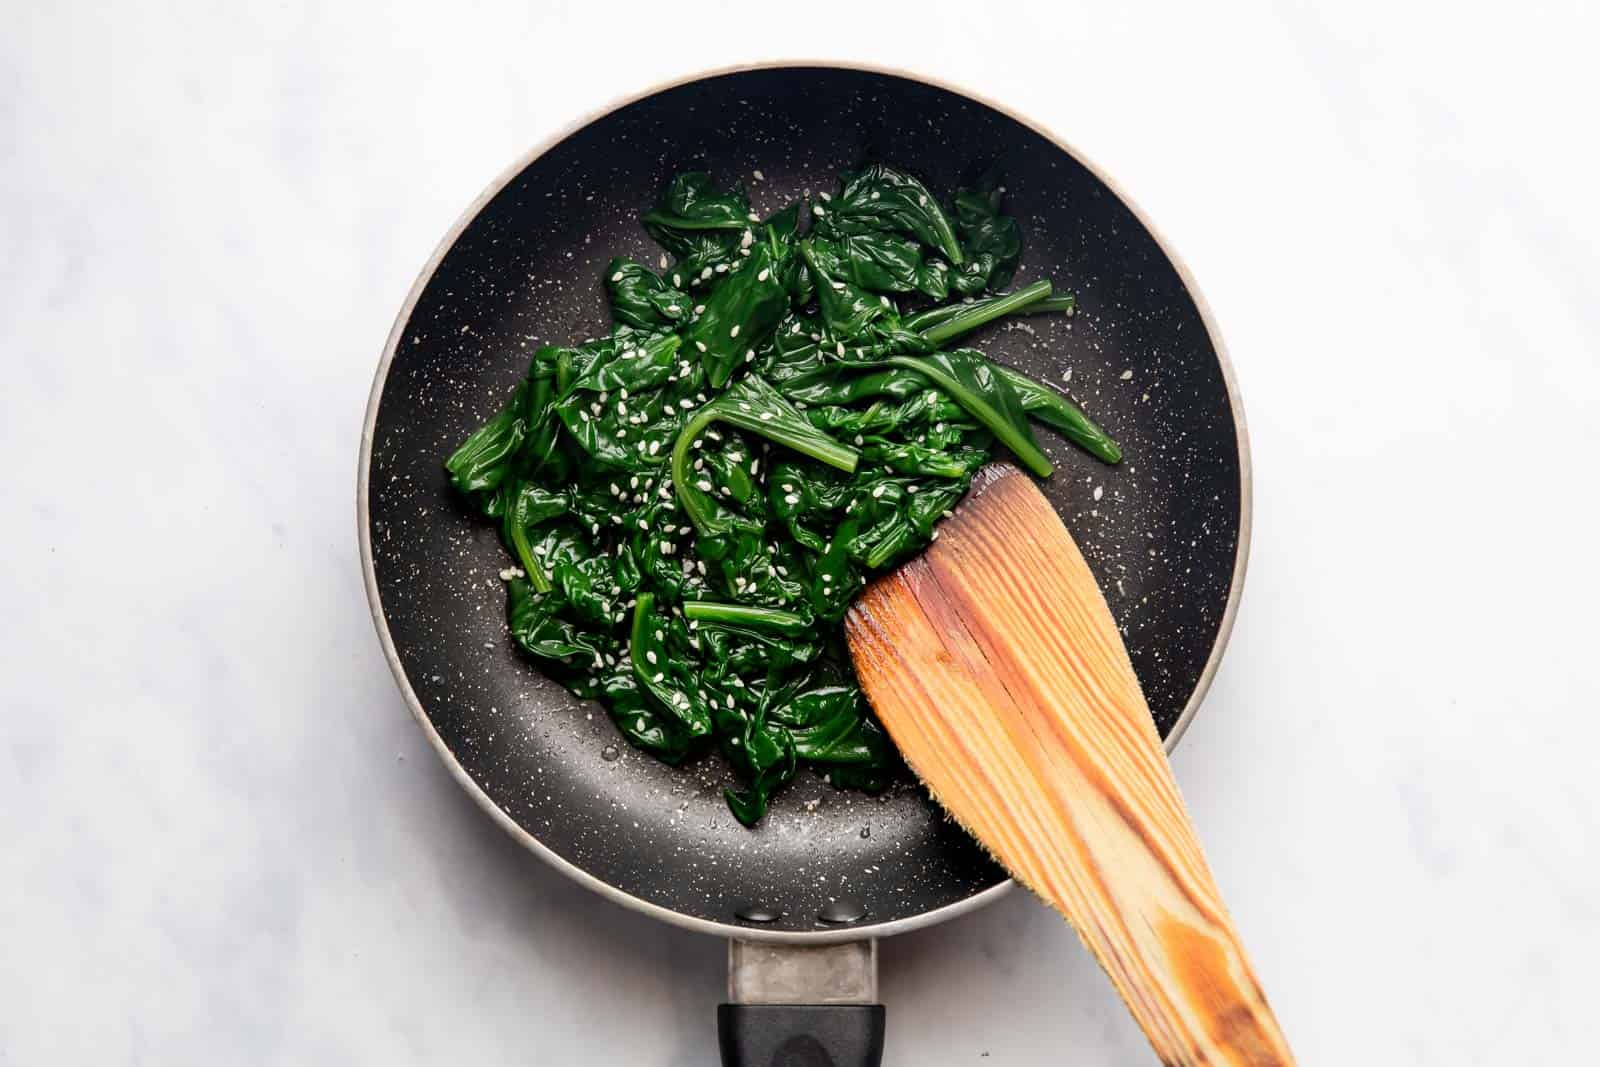 Sauteed Spinach in a pan topped with sesame seeds